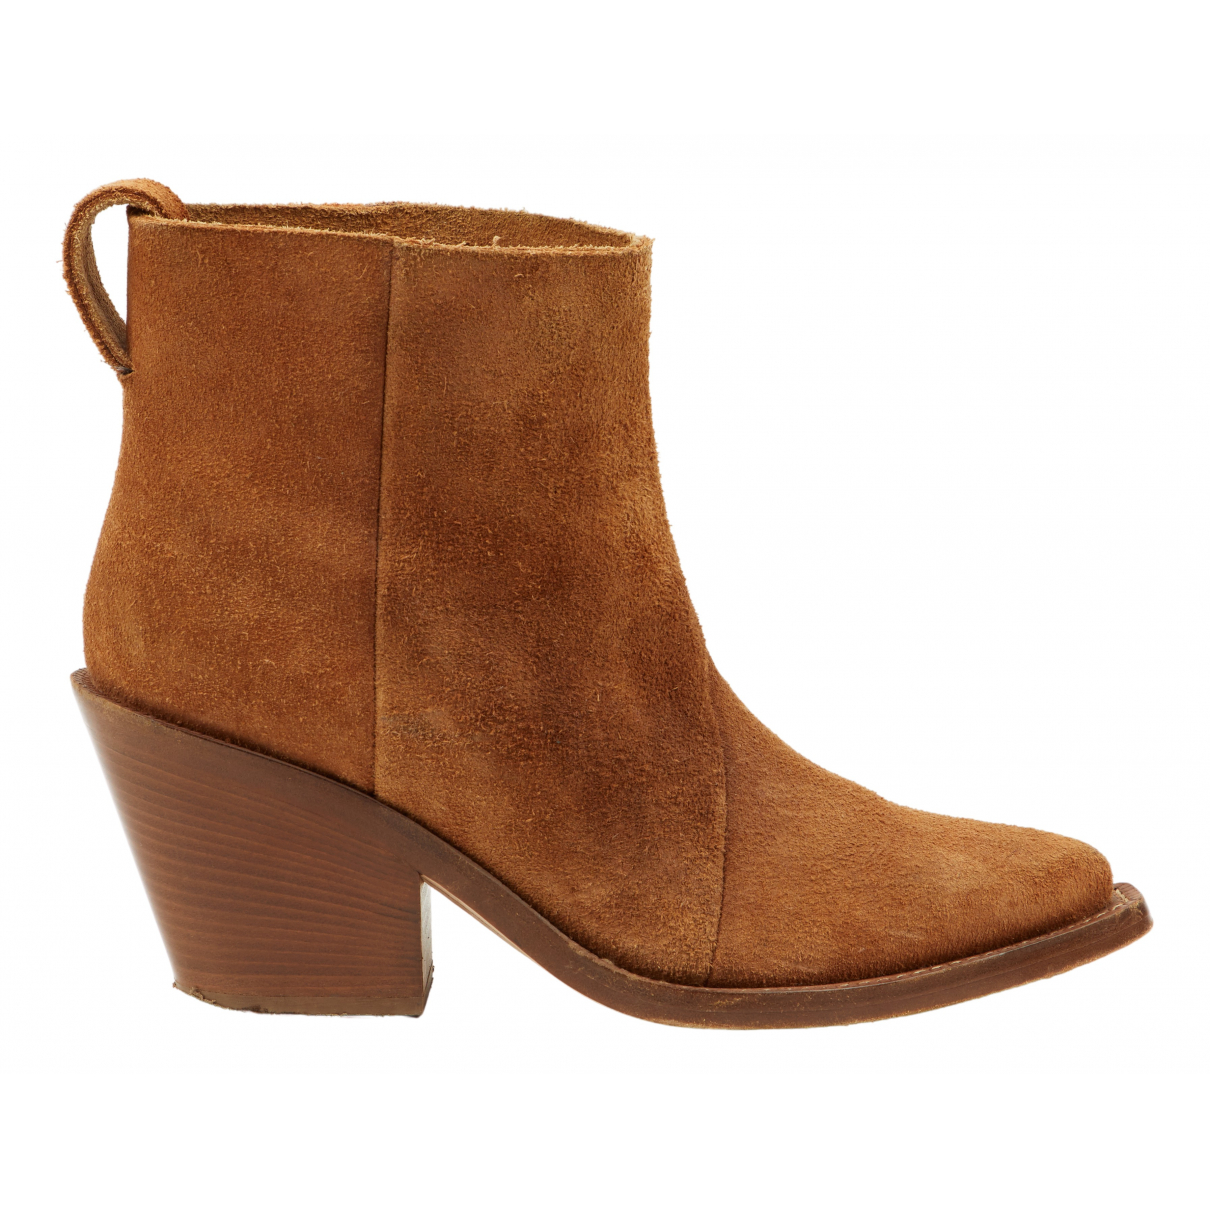 Acne Studios Donna Camel Suede Ankle boots for Women 40 EU